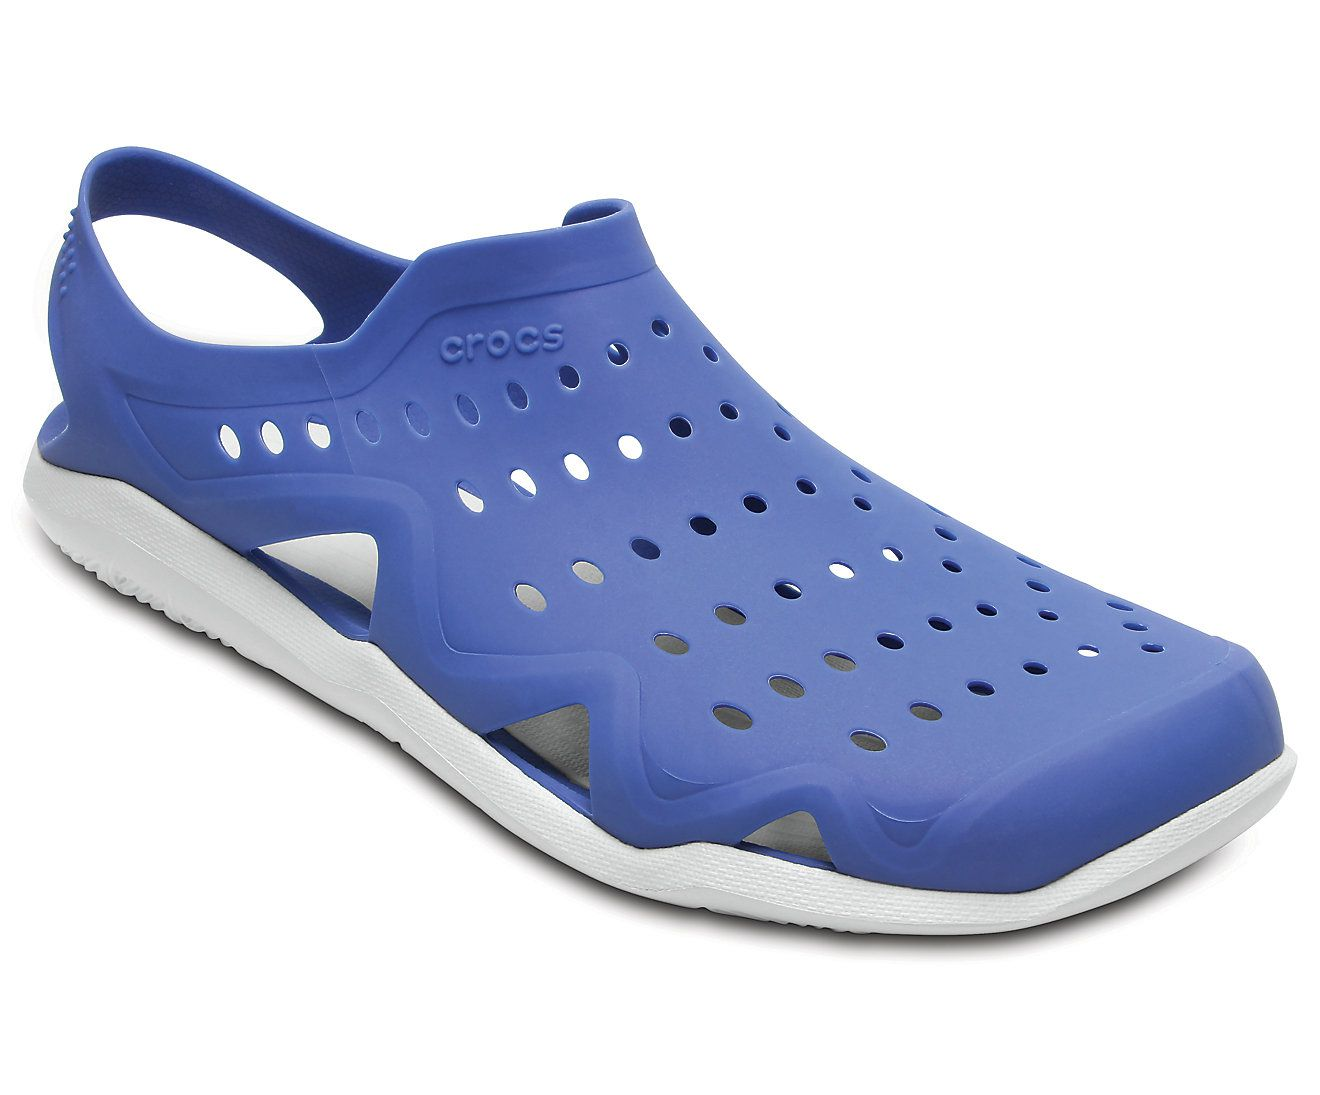 1589624274e1 Crocs Swiftwater Wave Lifestyle Blue Casual Shoes - Buy Crocs Swiftwater  Wave Lifestyle Blue Casual Shoes Online at Best Prices in India on Snapdeal